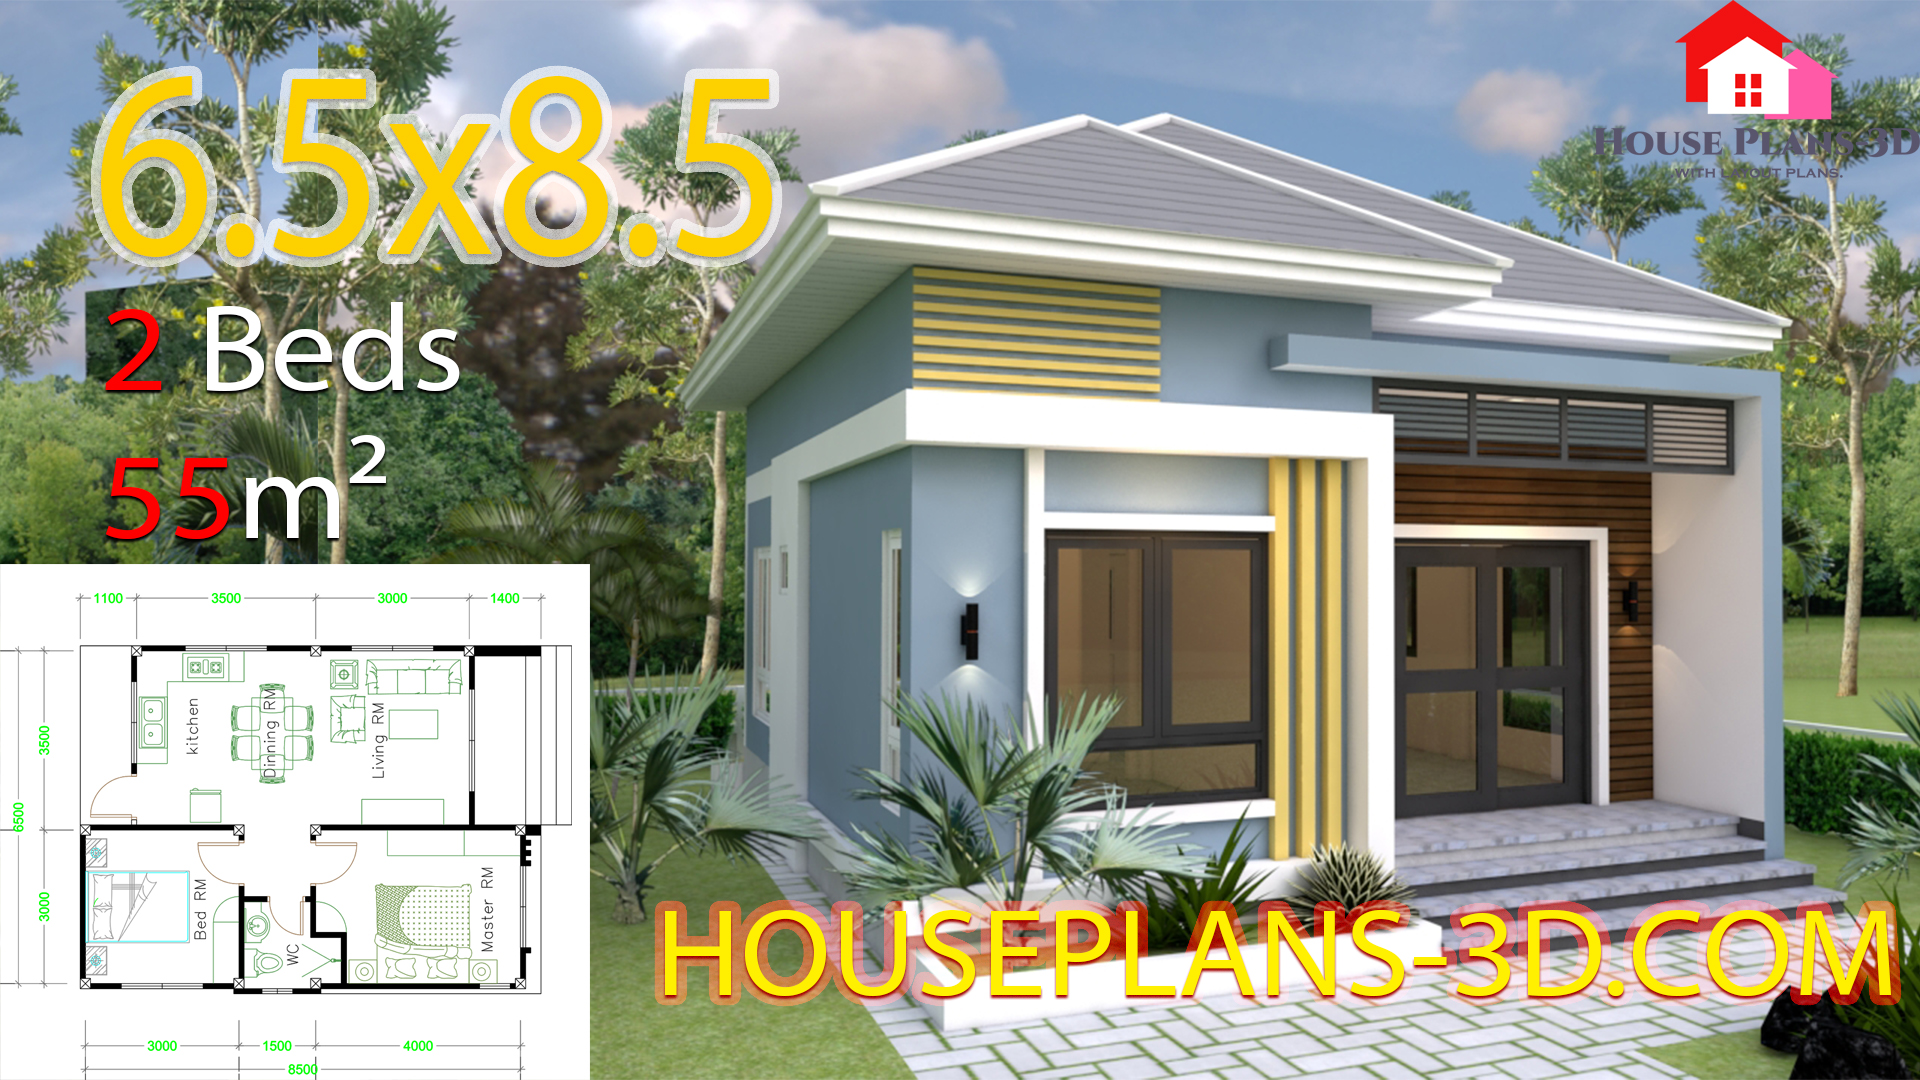 Small House Plans 6.5x8.5 with 2 Bedrooms Hip roof - View 2 Bedroom Simple Small House Design 3D Gif